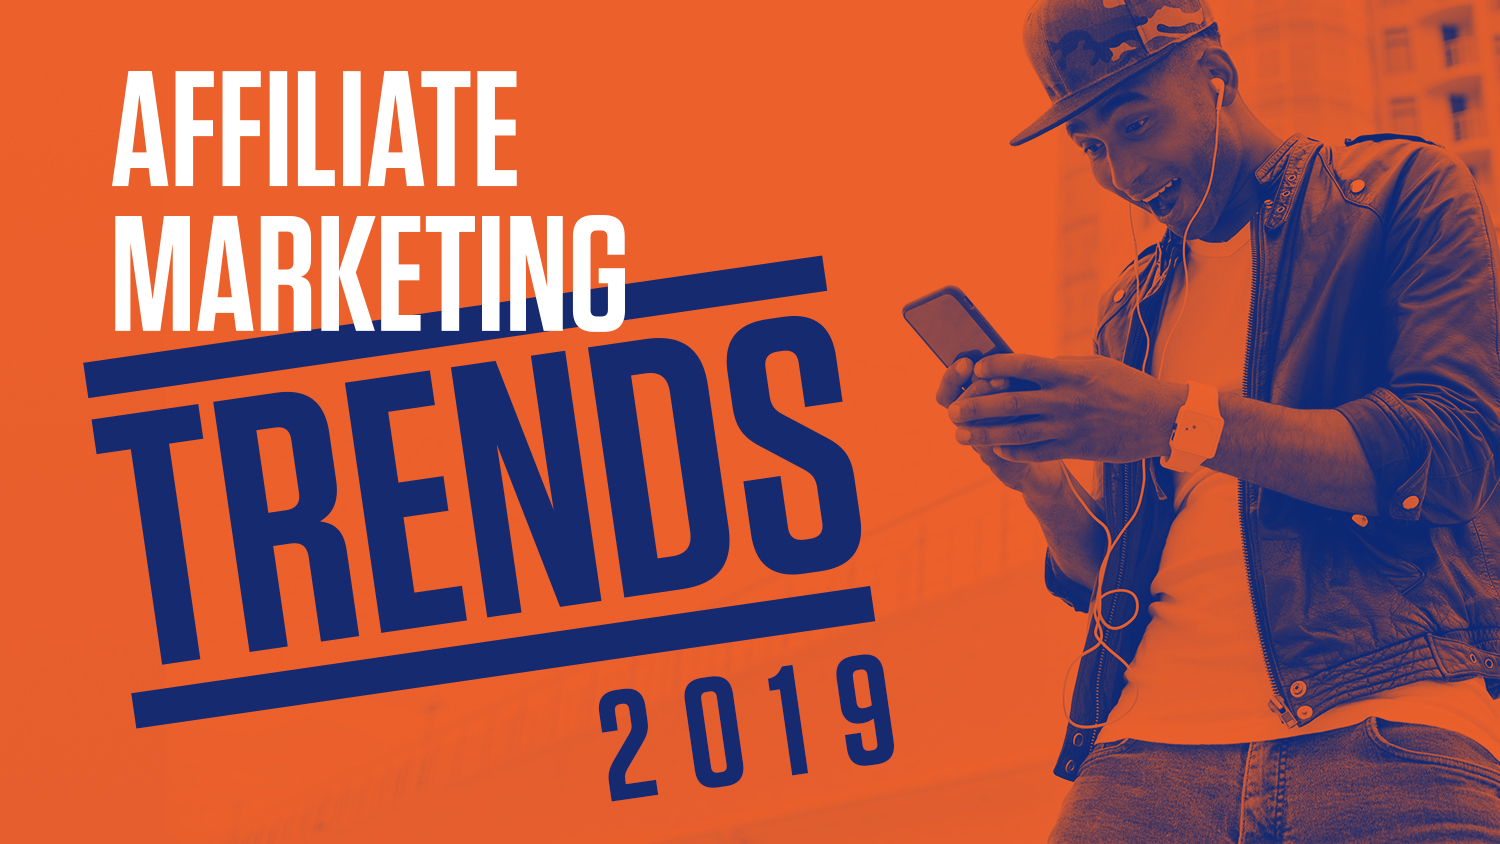 Industry Experts on the Top Affiliate Marketing Trends in 2019